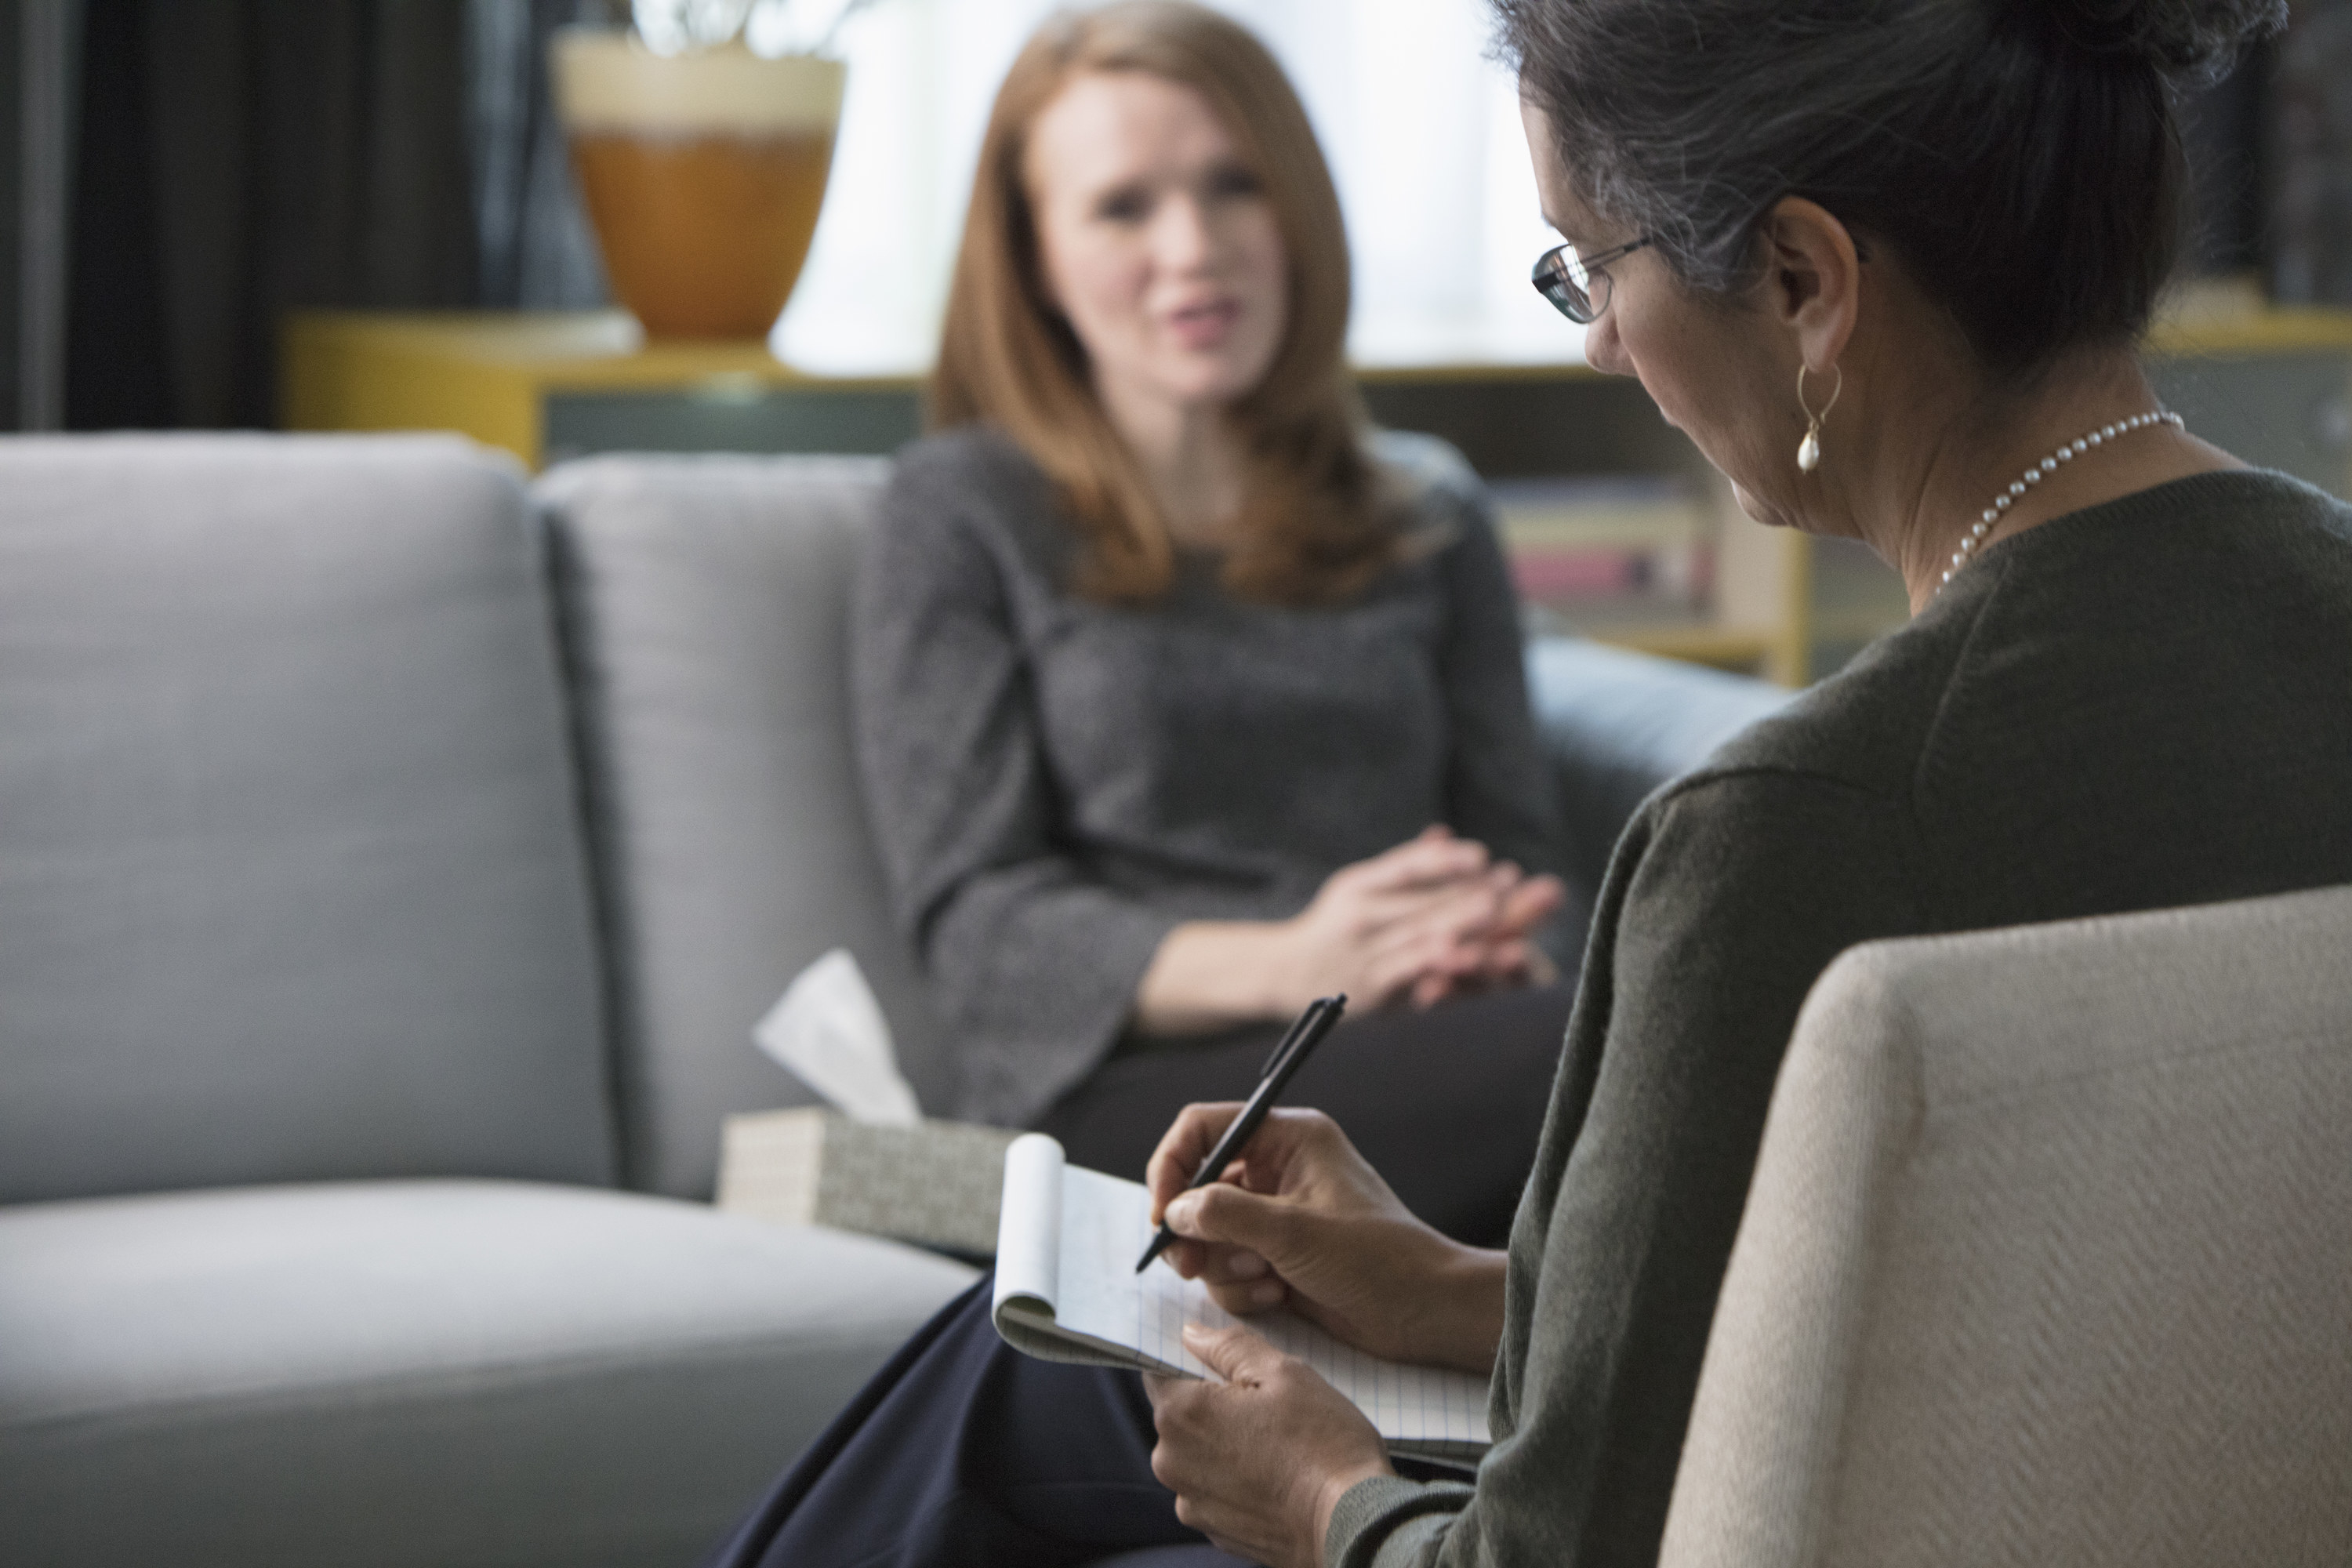 Woman speaks to her therapist, who is taking notes